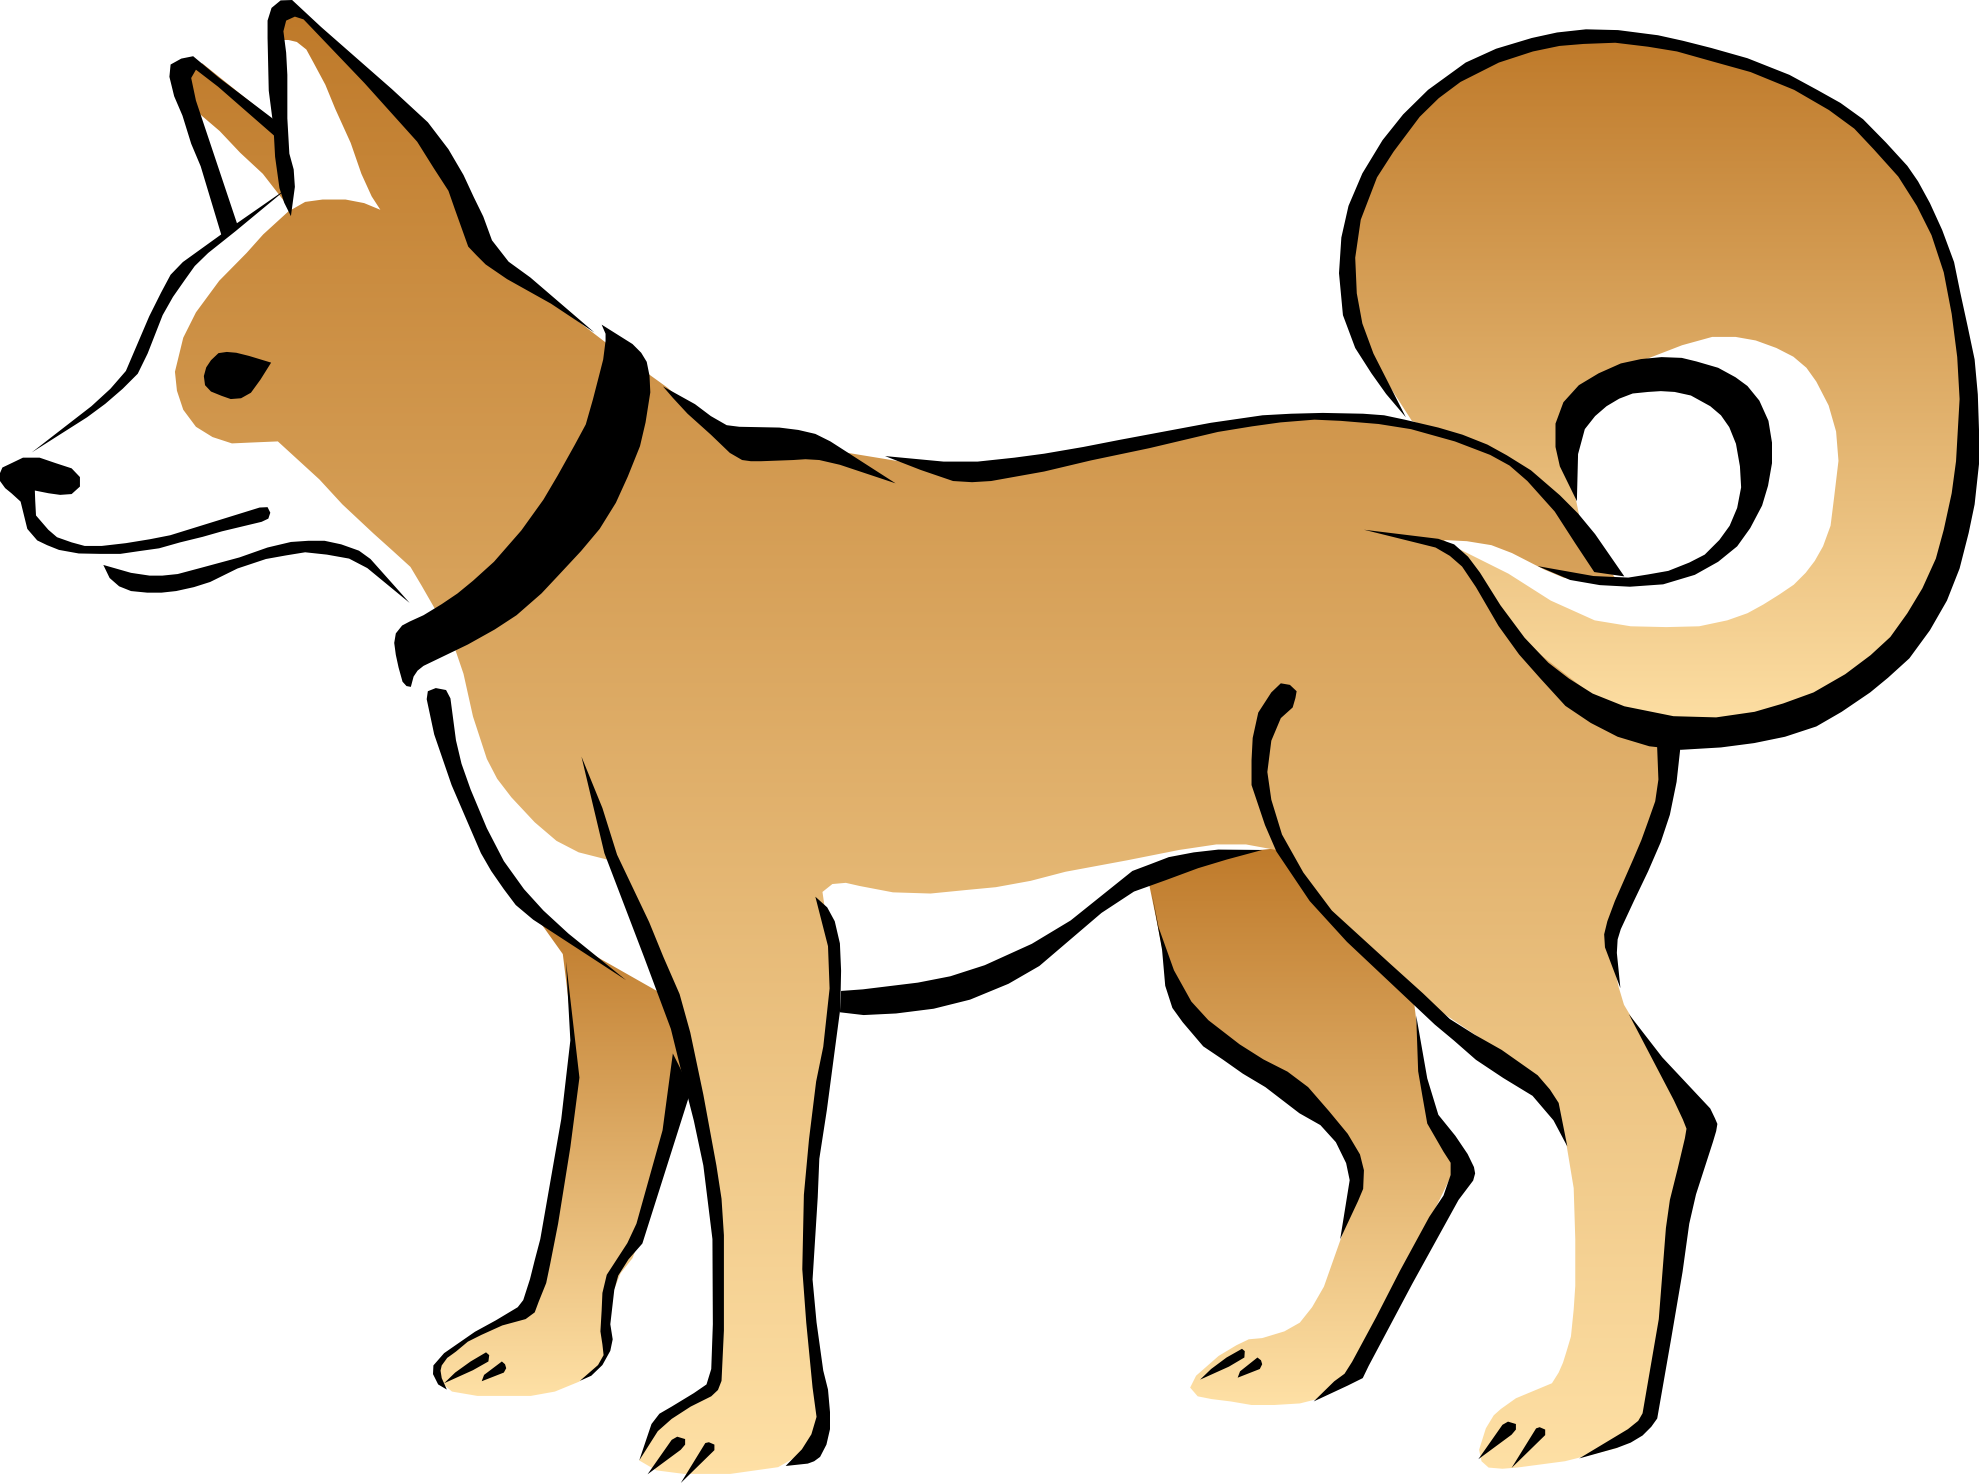 Beagle svg cute cartoon. Dog drawing at getdrawings